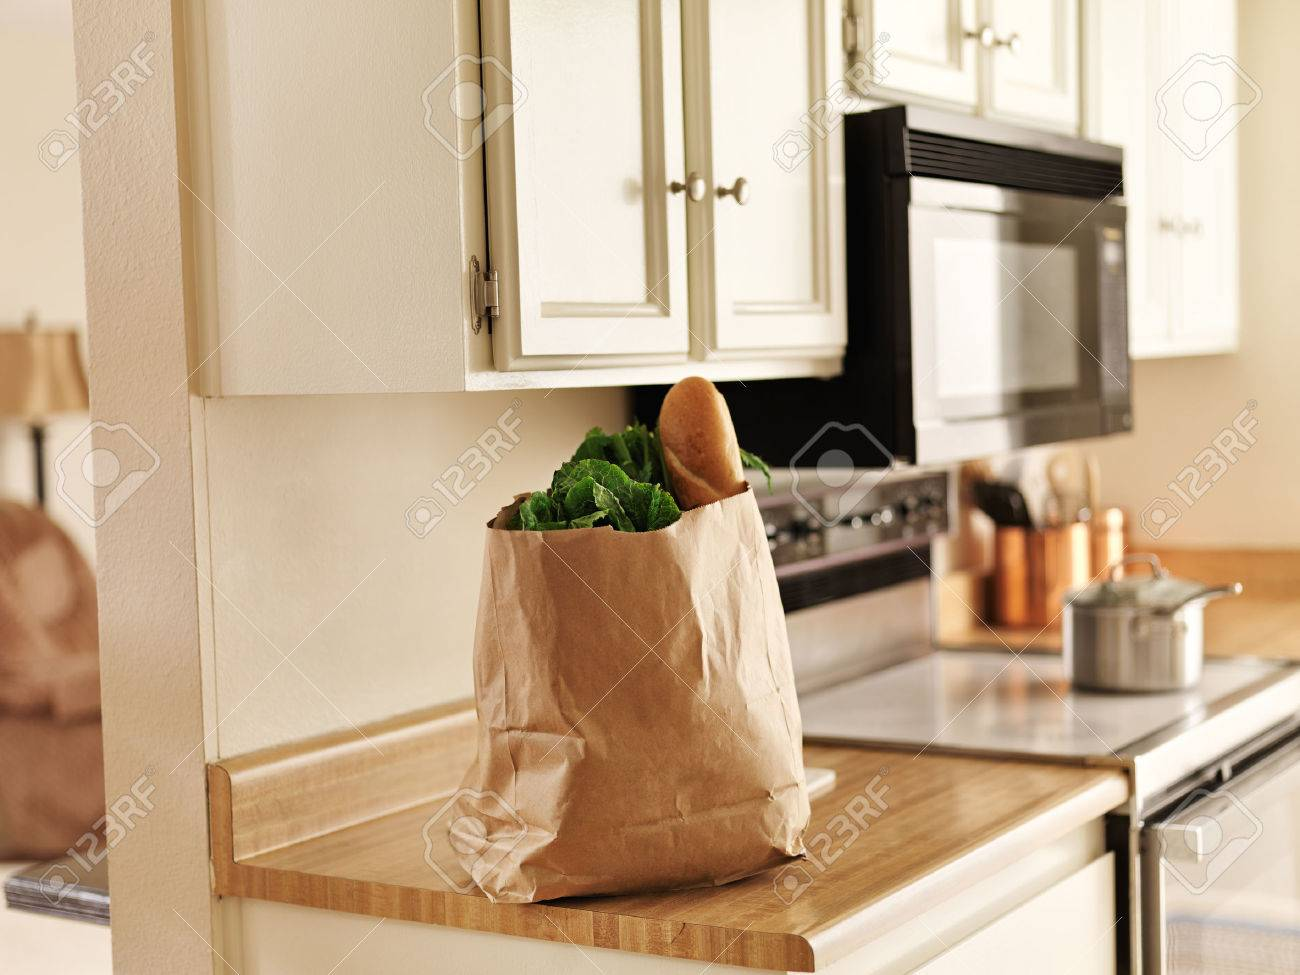 kitchen counter with food. Paper Grocery Bag Of Freshly Bought Food From Store Sitting On Kitchen Counter Stock Photo - With I